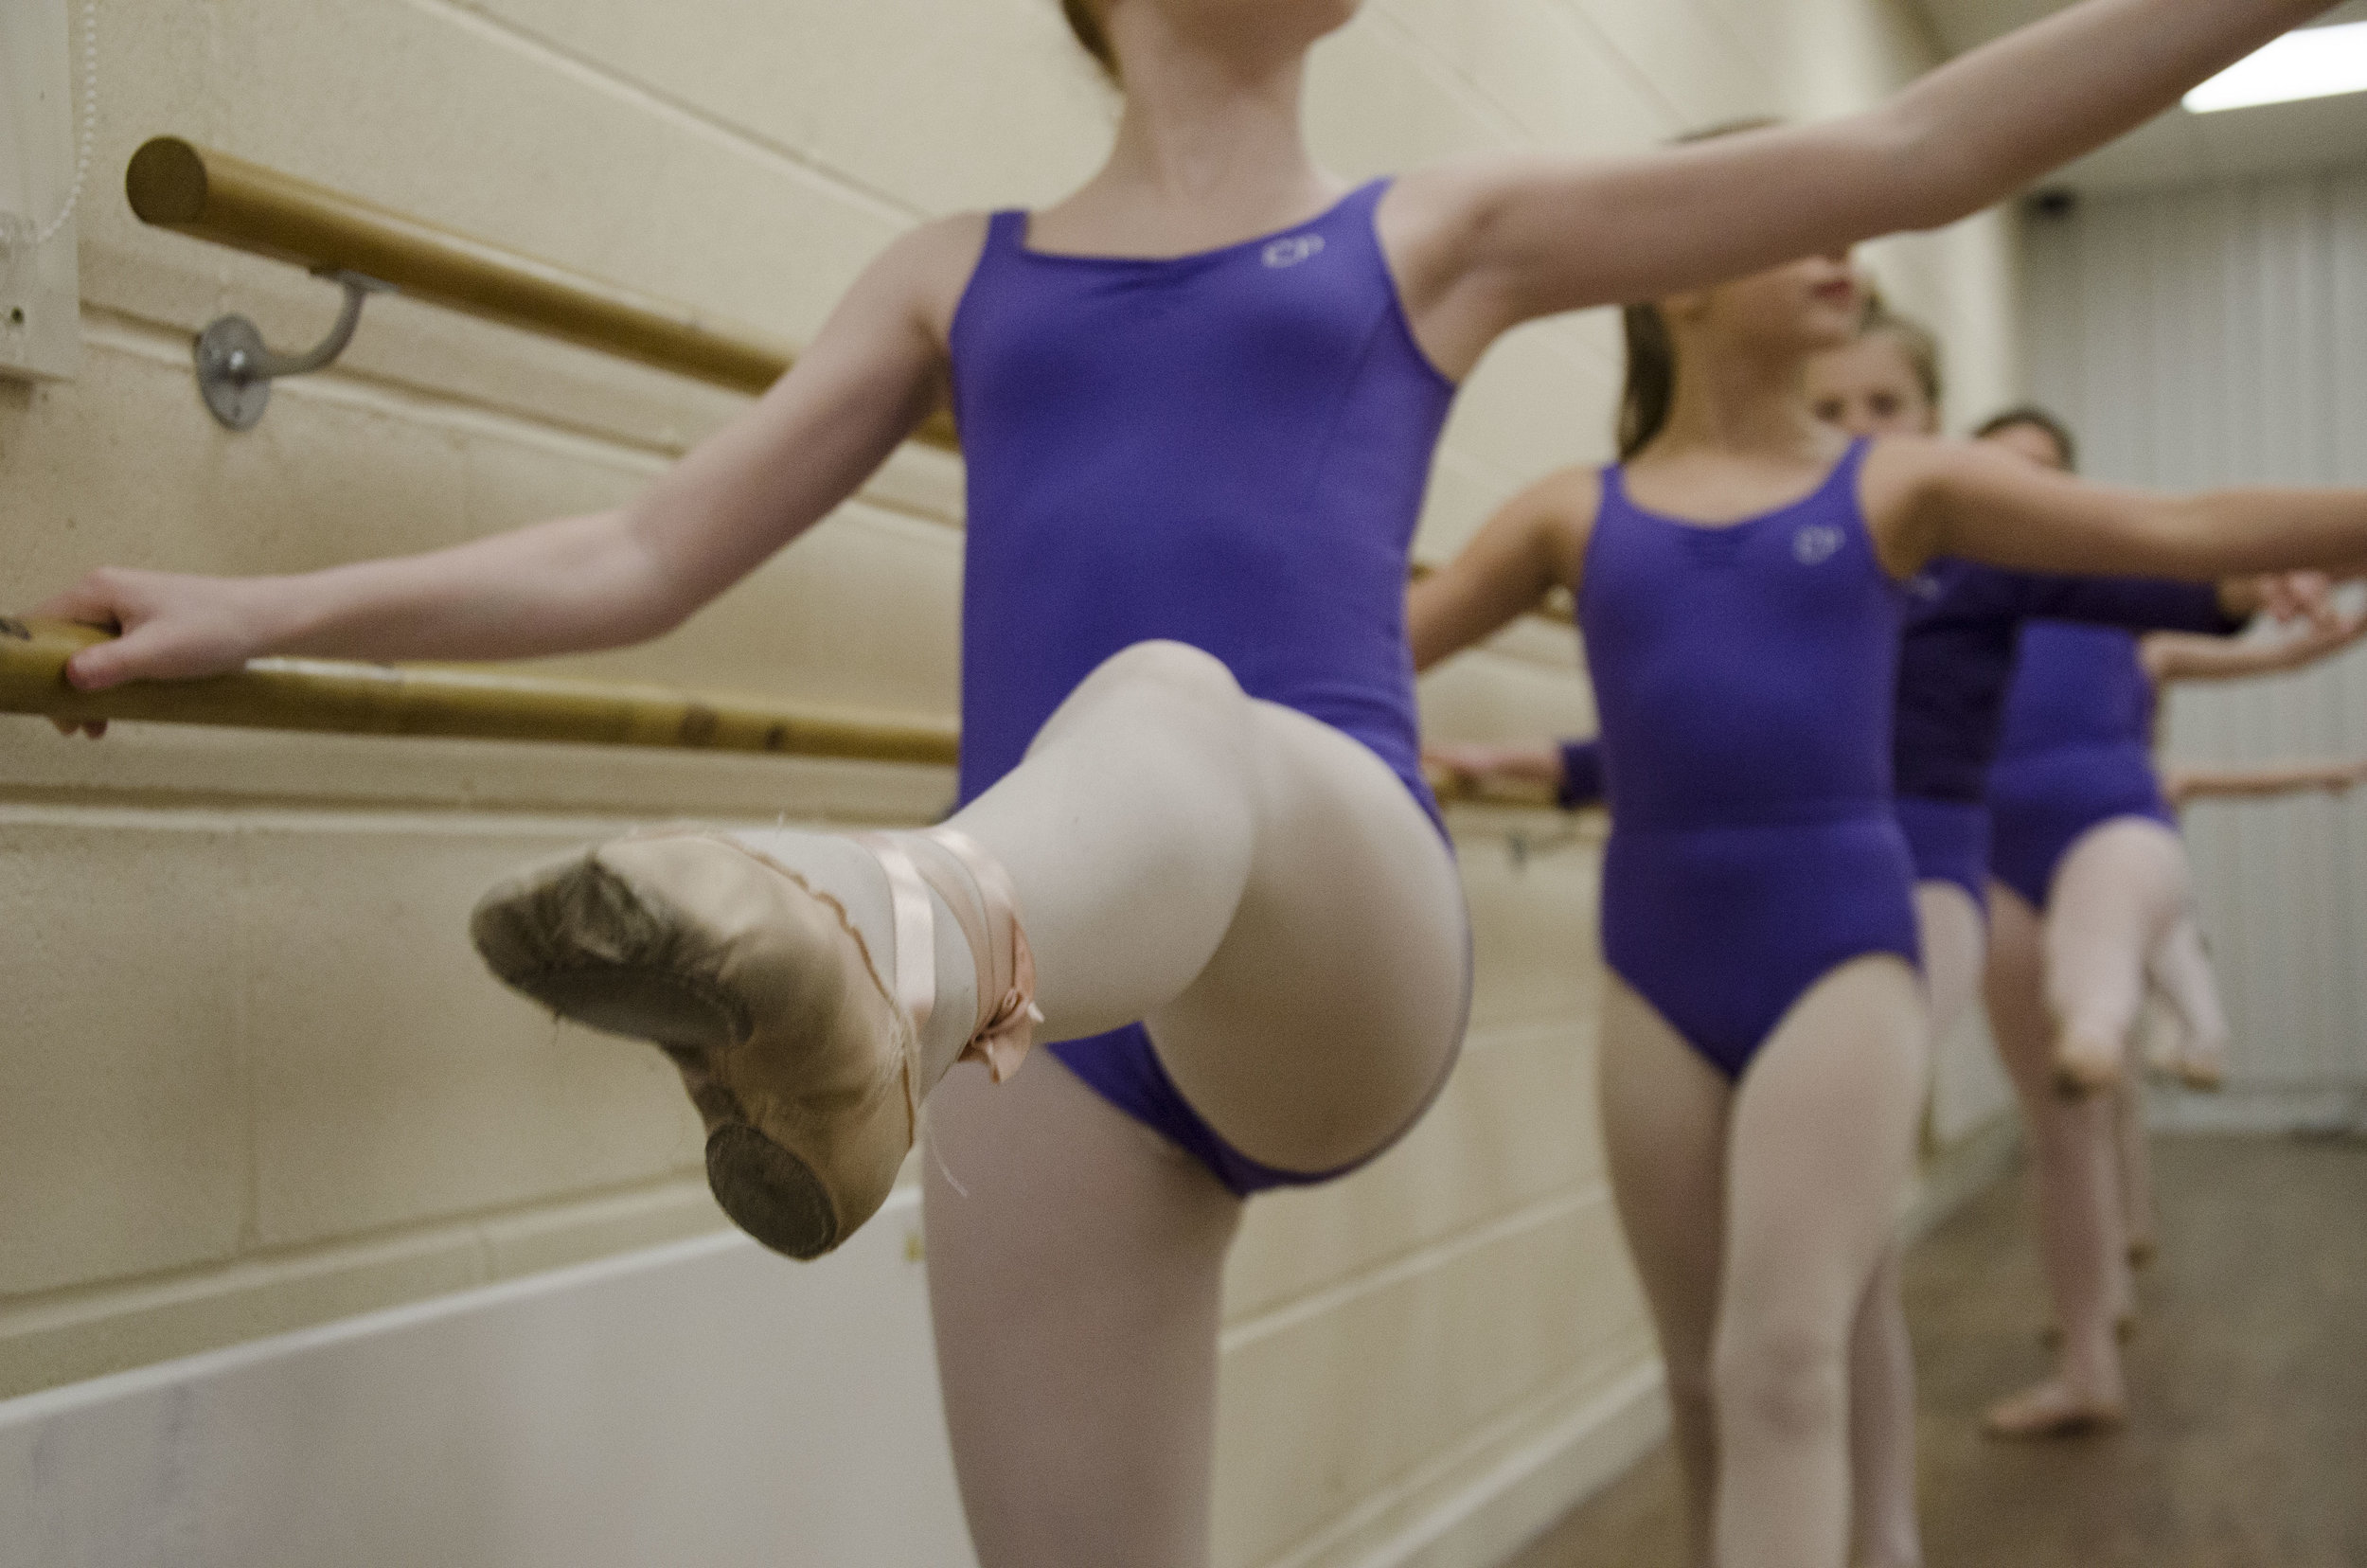 Grade 3 of the Royal Academy of Dance Ballet in York